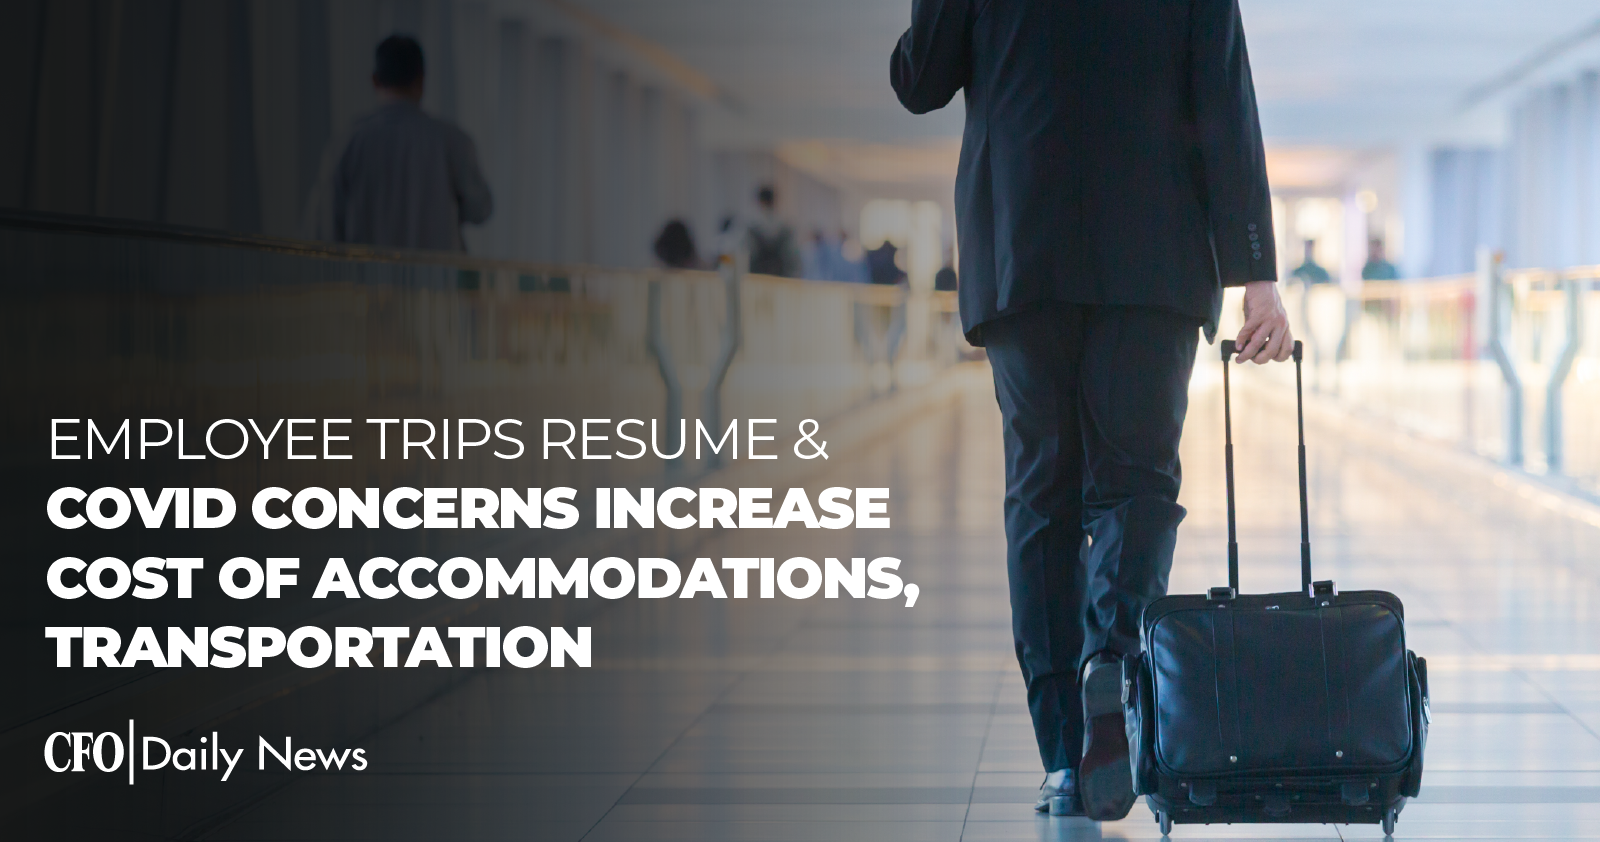 employee trips resume and COVID concerns increase cost of accommodations transportation